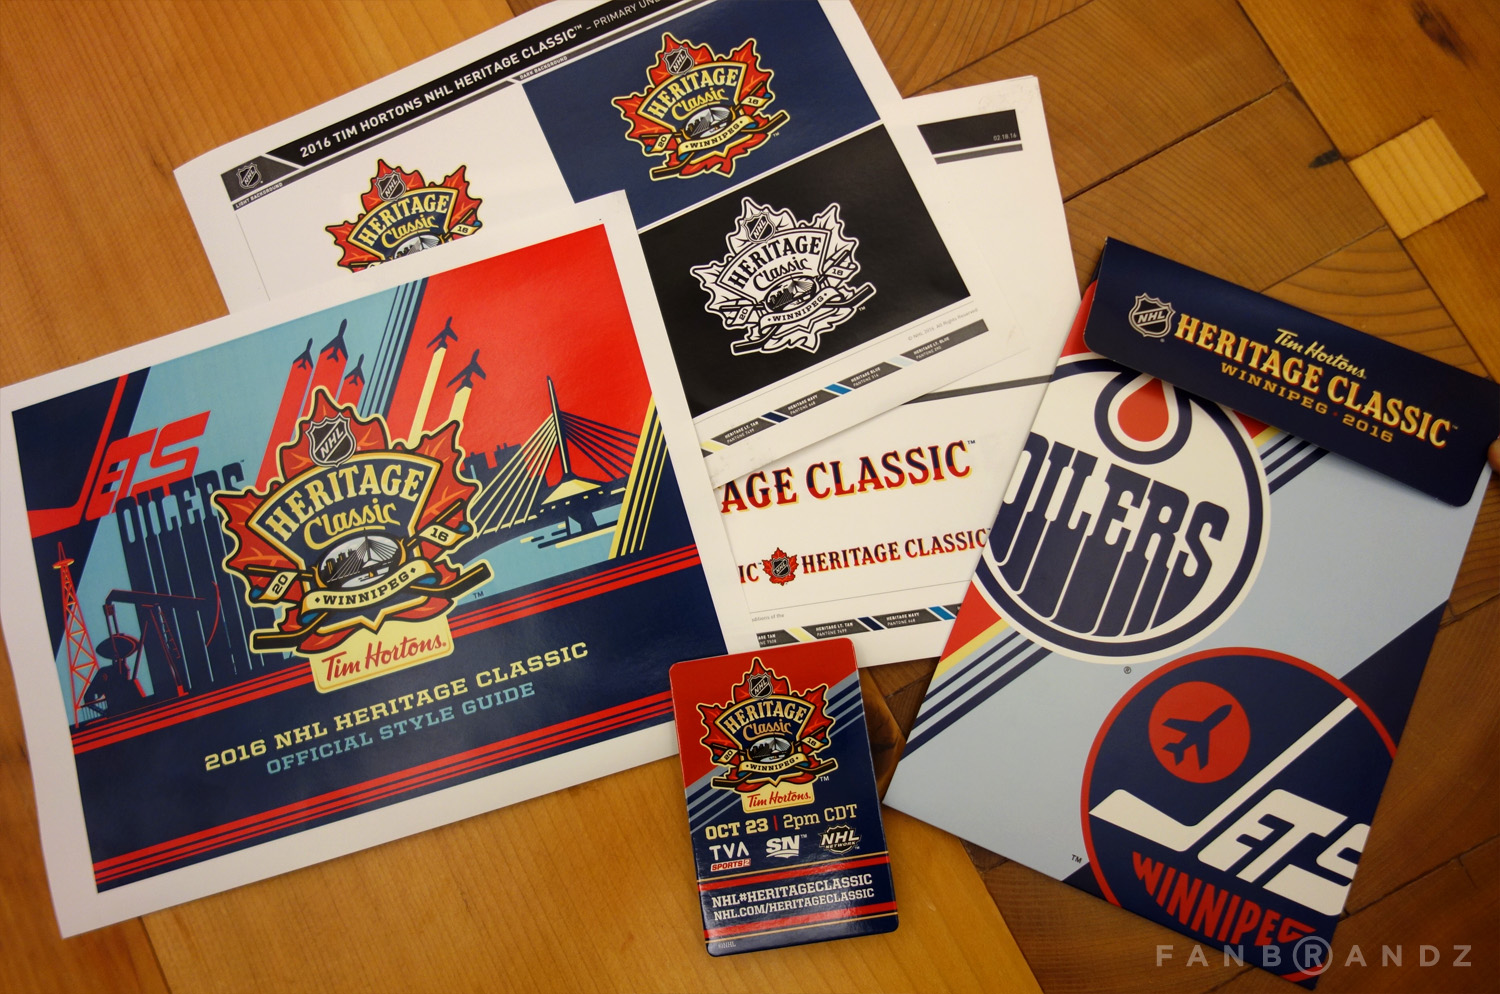 Final Heritage Classic style guide and print samples